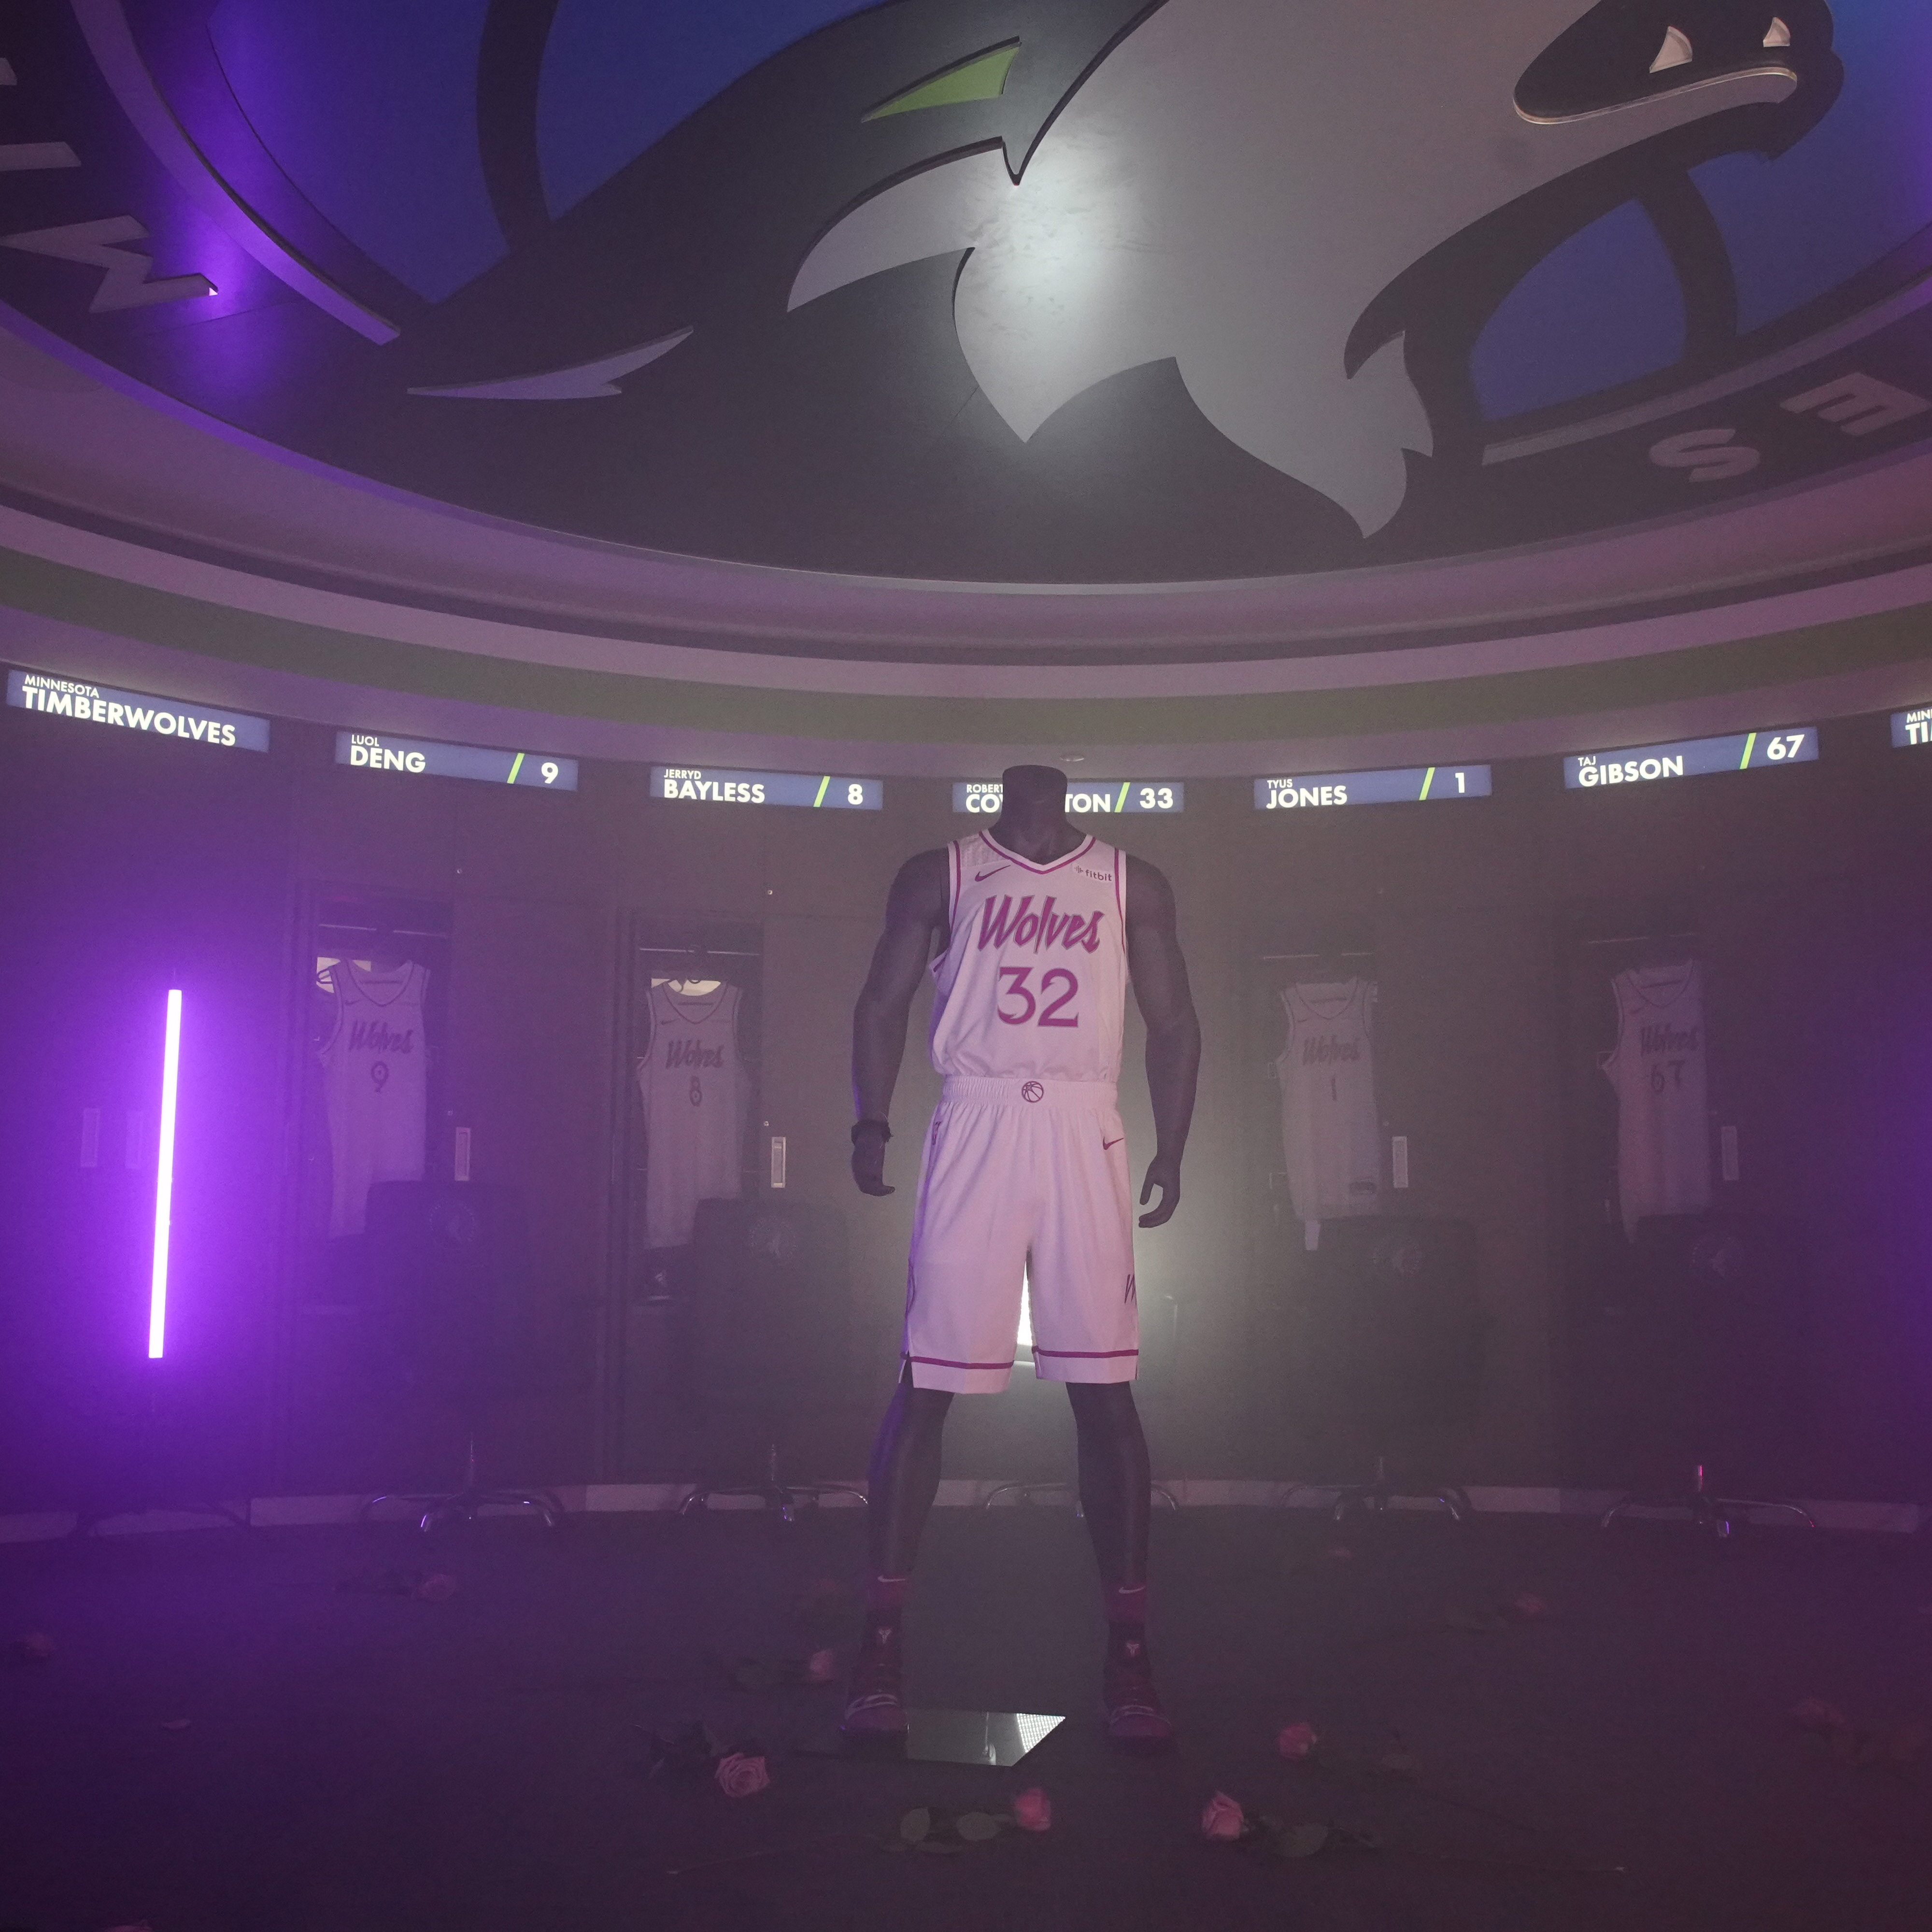 6f5b457fd A look at the Timberwolves  2018-19 Earned Edition uniforms which will  debut on